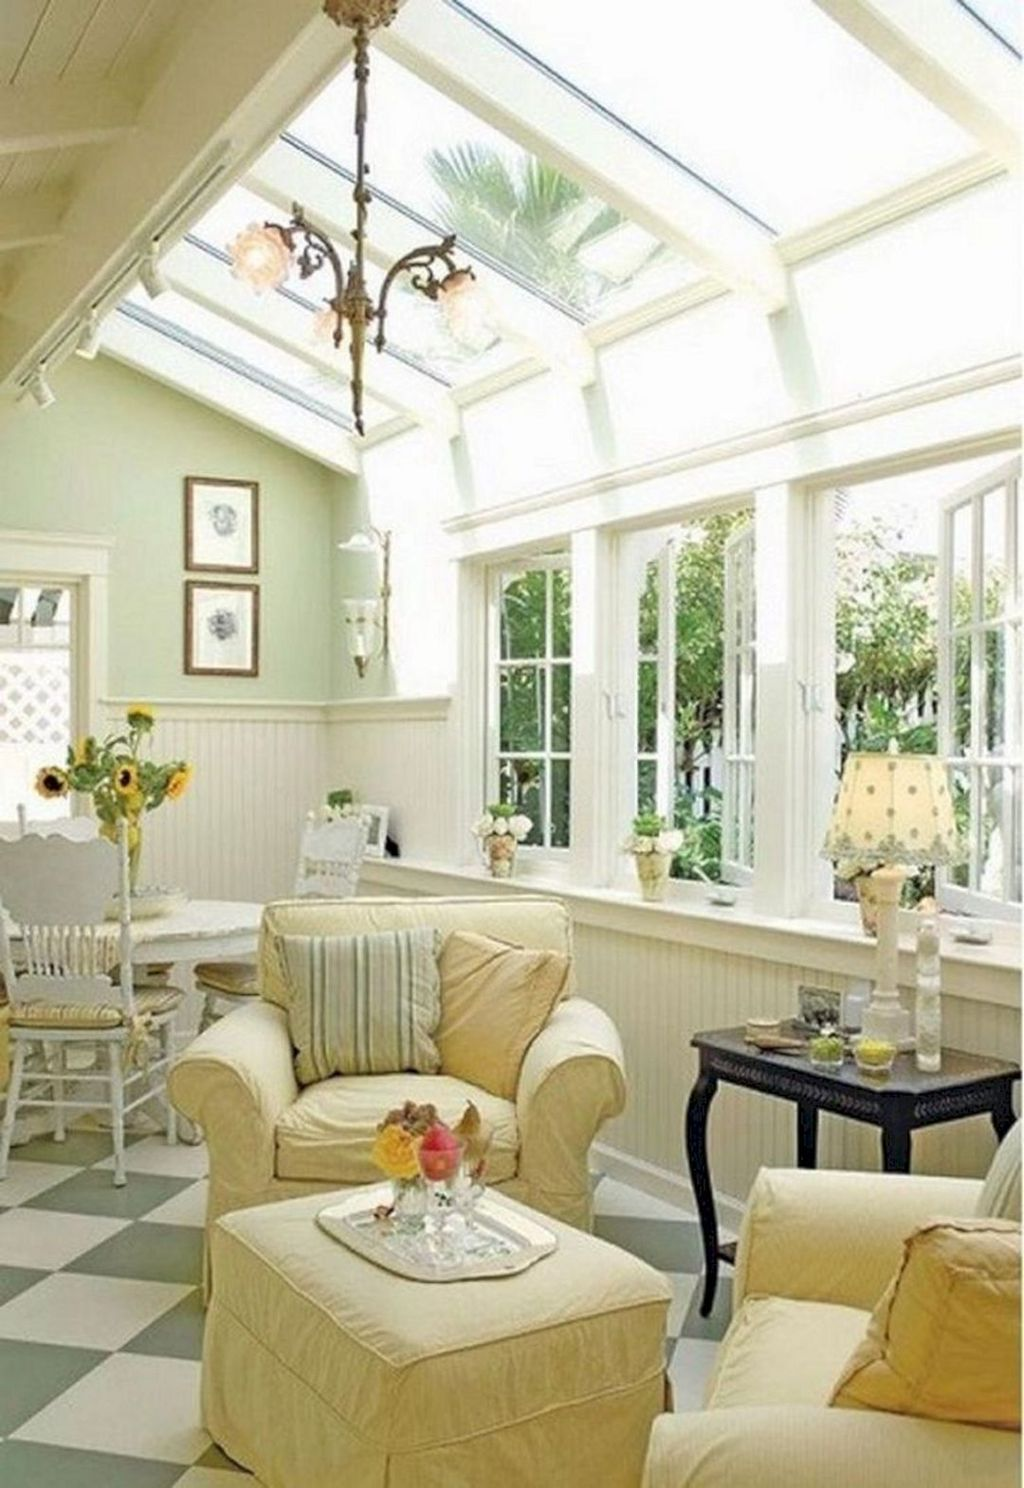 Admirable Sunroom Design Ideas You Must Have 04